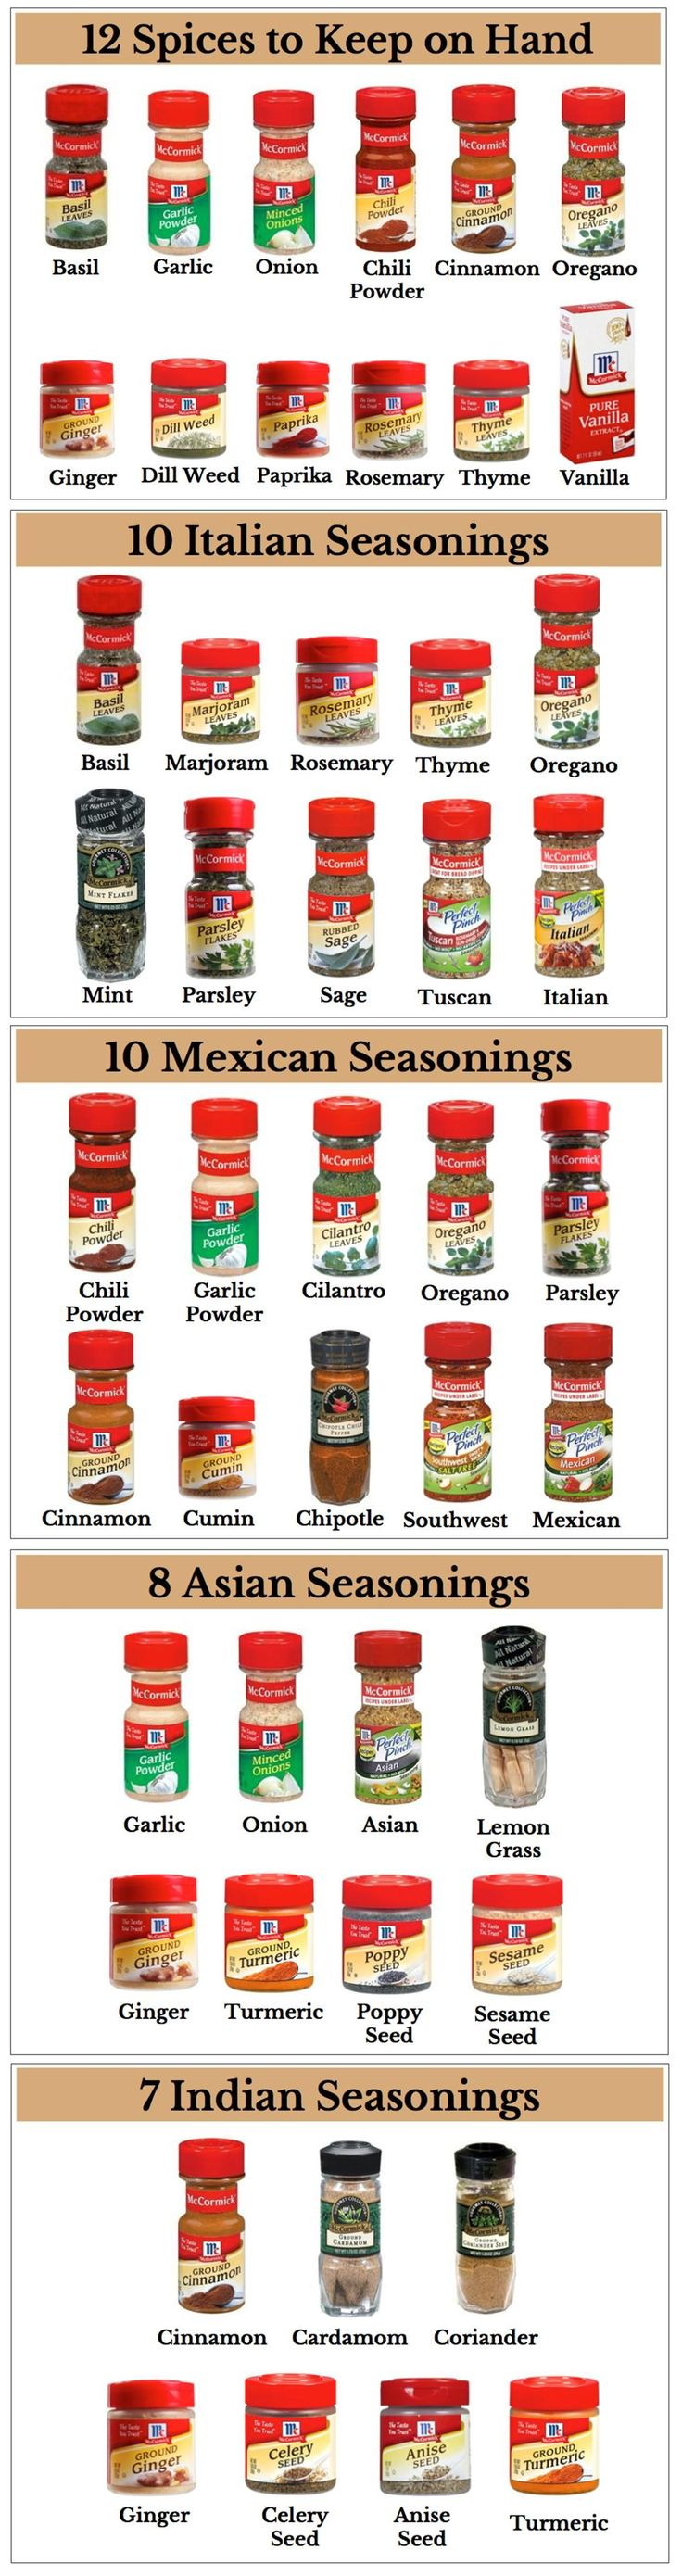 Spices to Always Have On Hand! So helpful.